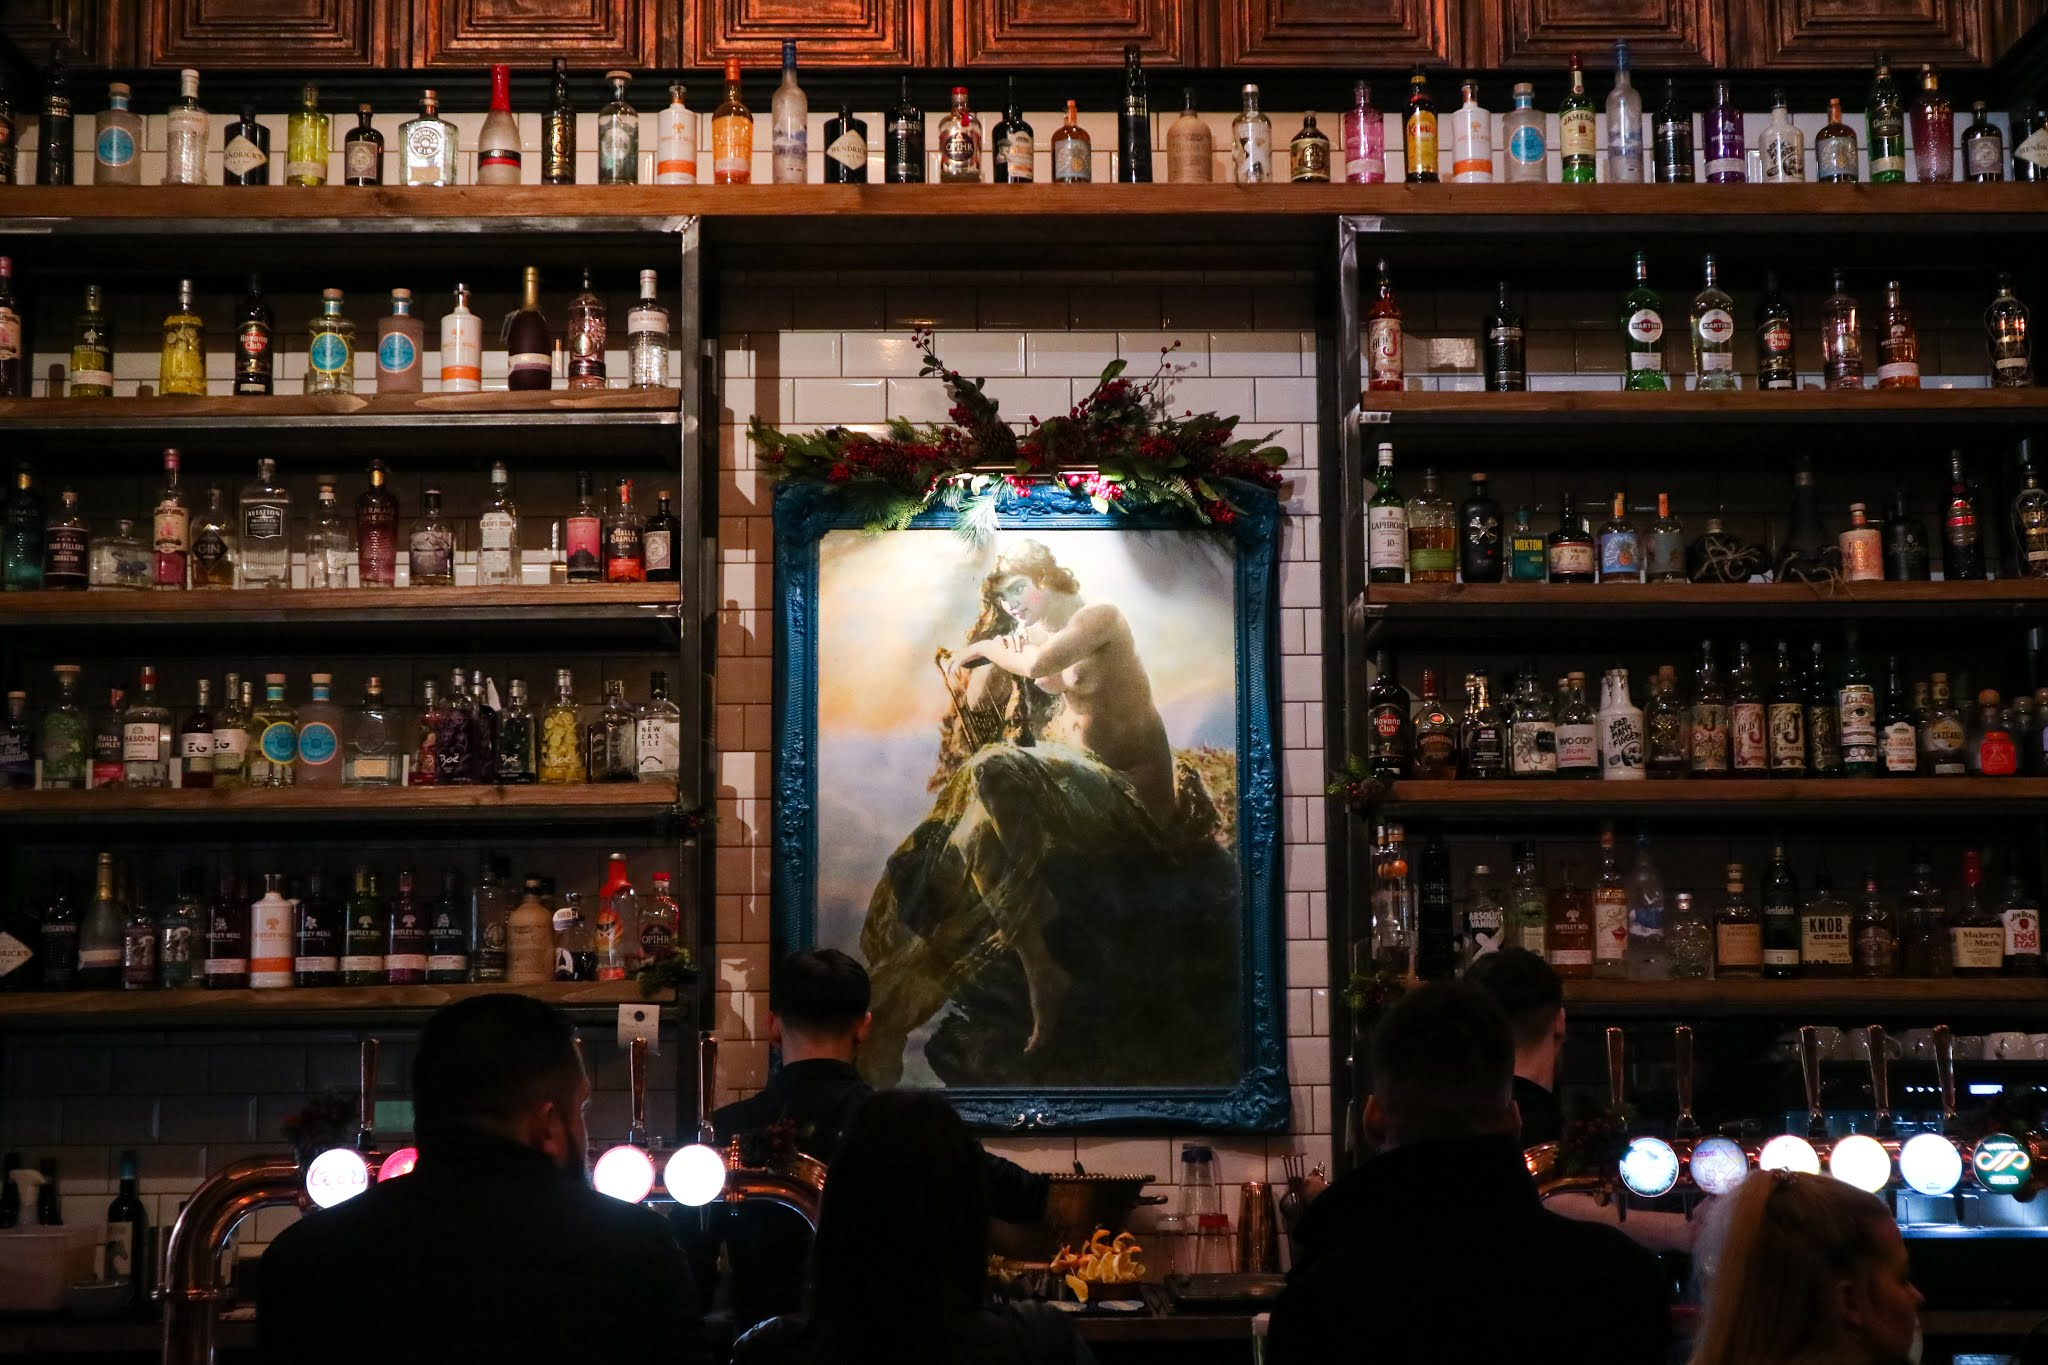 The bar at The Ship's Cat North Shields with a beautiful Venus mural and shelves of liquor bottles